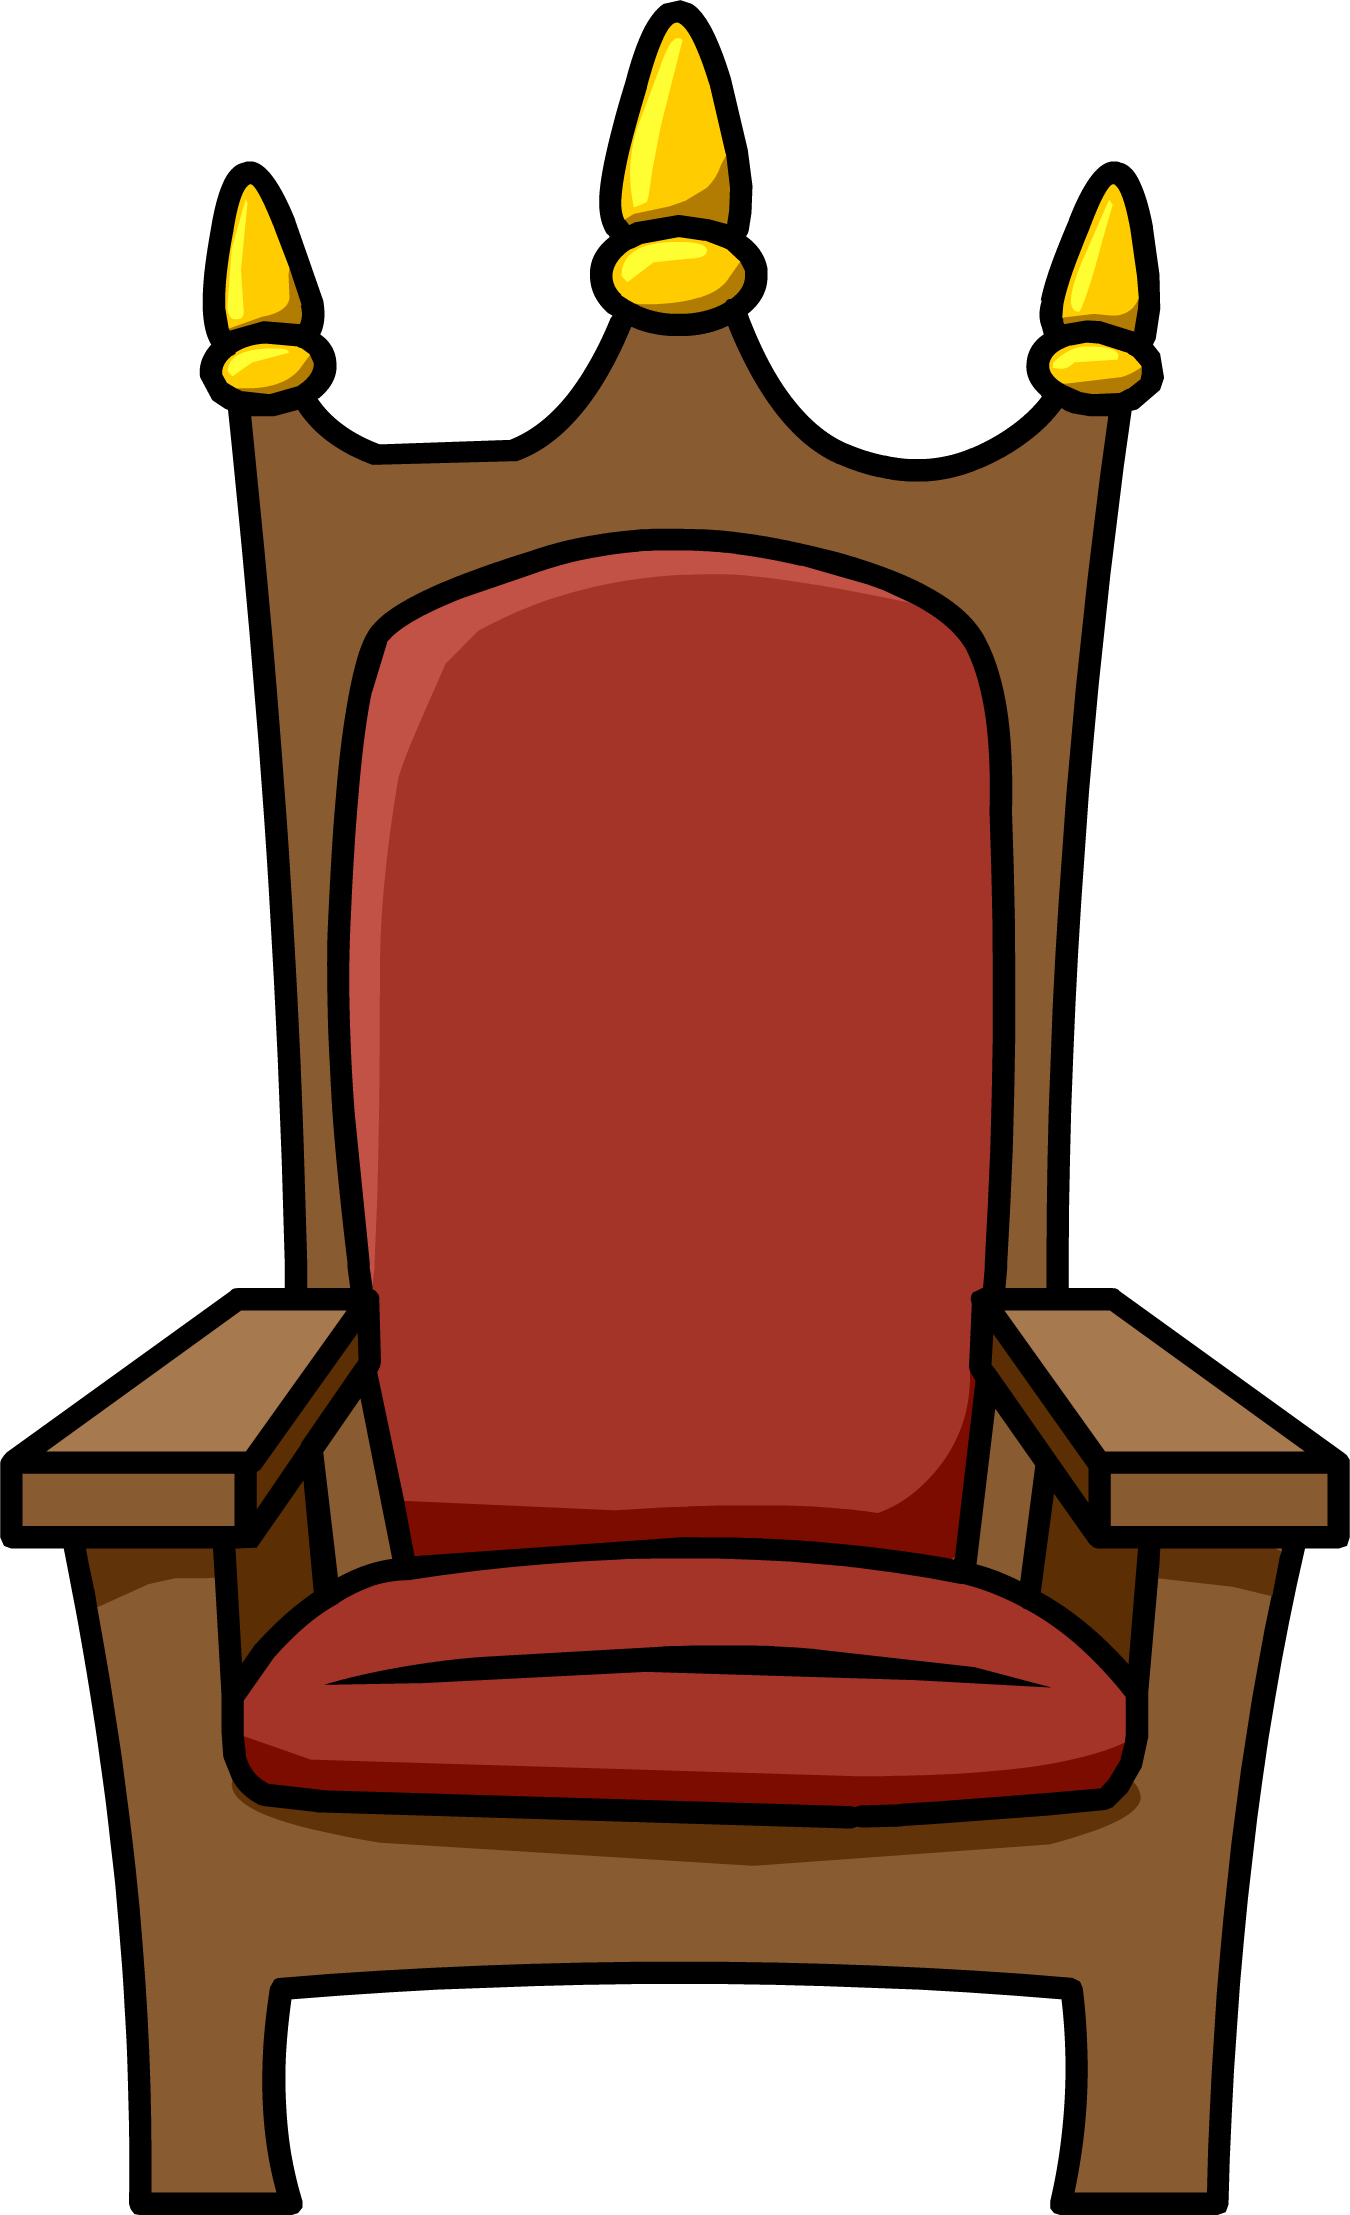 royal throne club penguin wiki fandom powered by wikia skin clipart sky clip art images